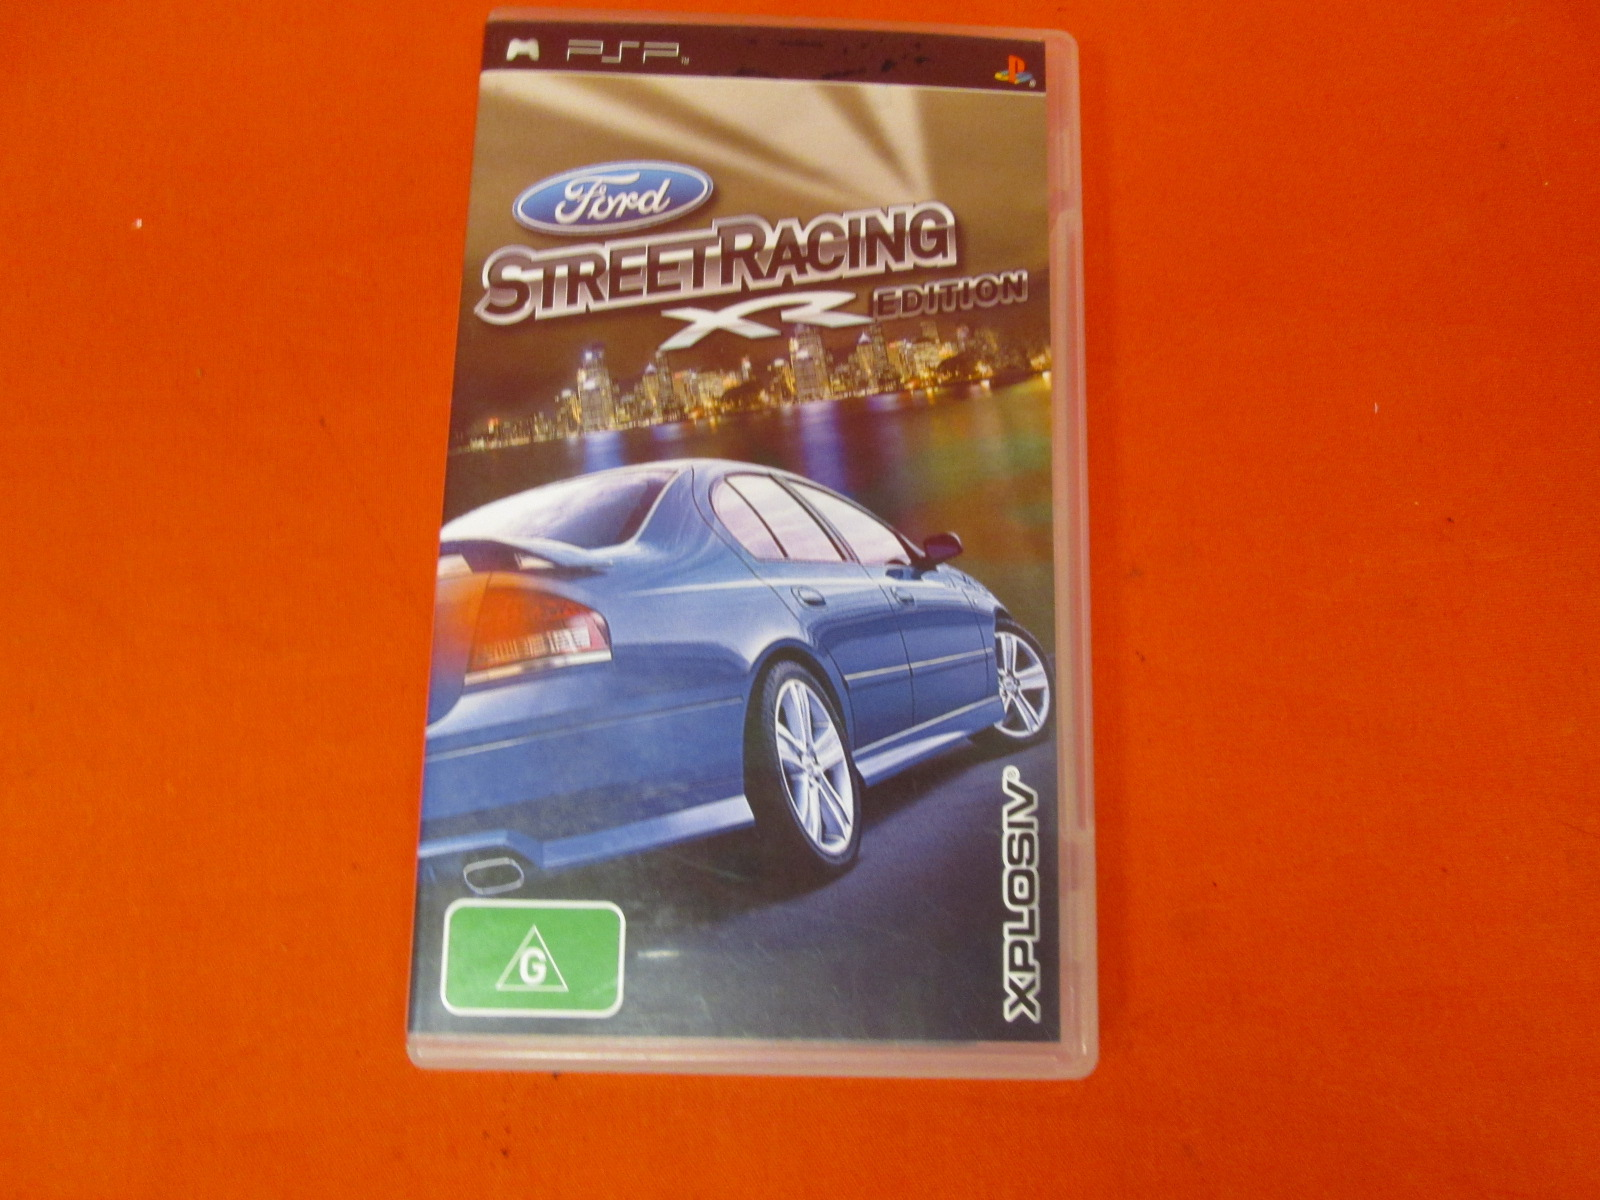 Ford Street Racing Xr Edition Region 4 Only For PSP